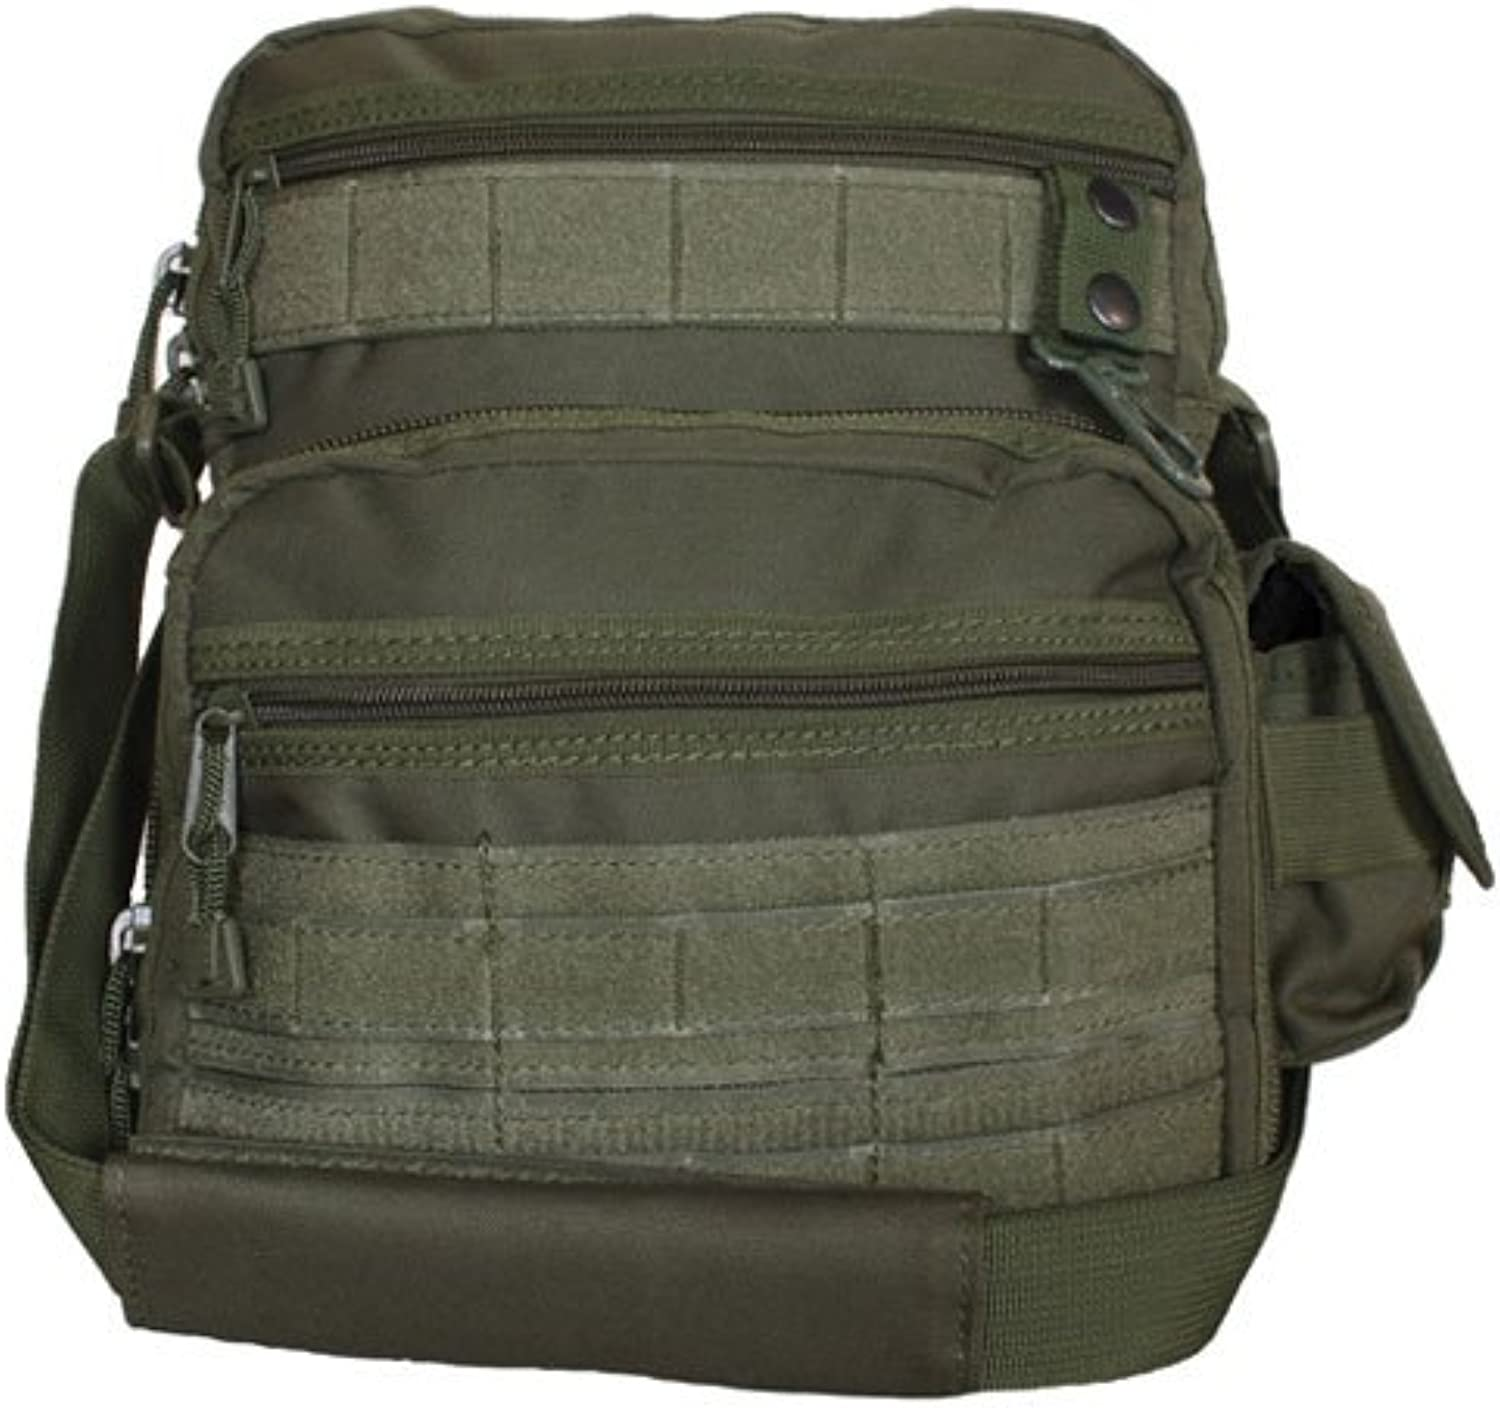 653573efdc5d Fox Outdoor Products Tactical FieldTech Utility Olive Drab Bag ...